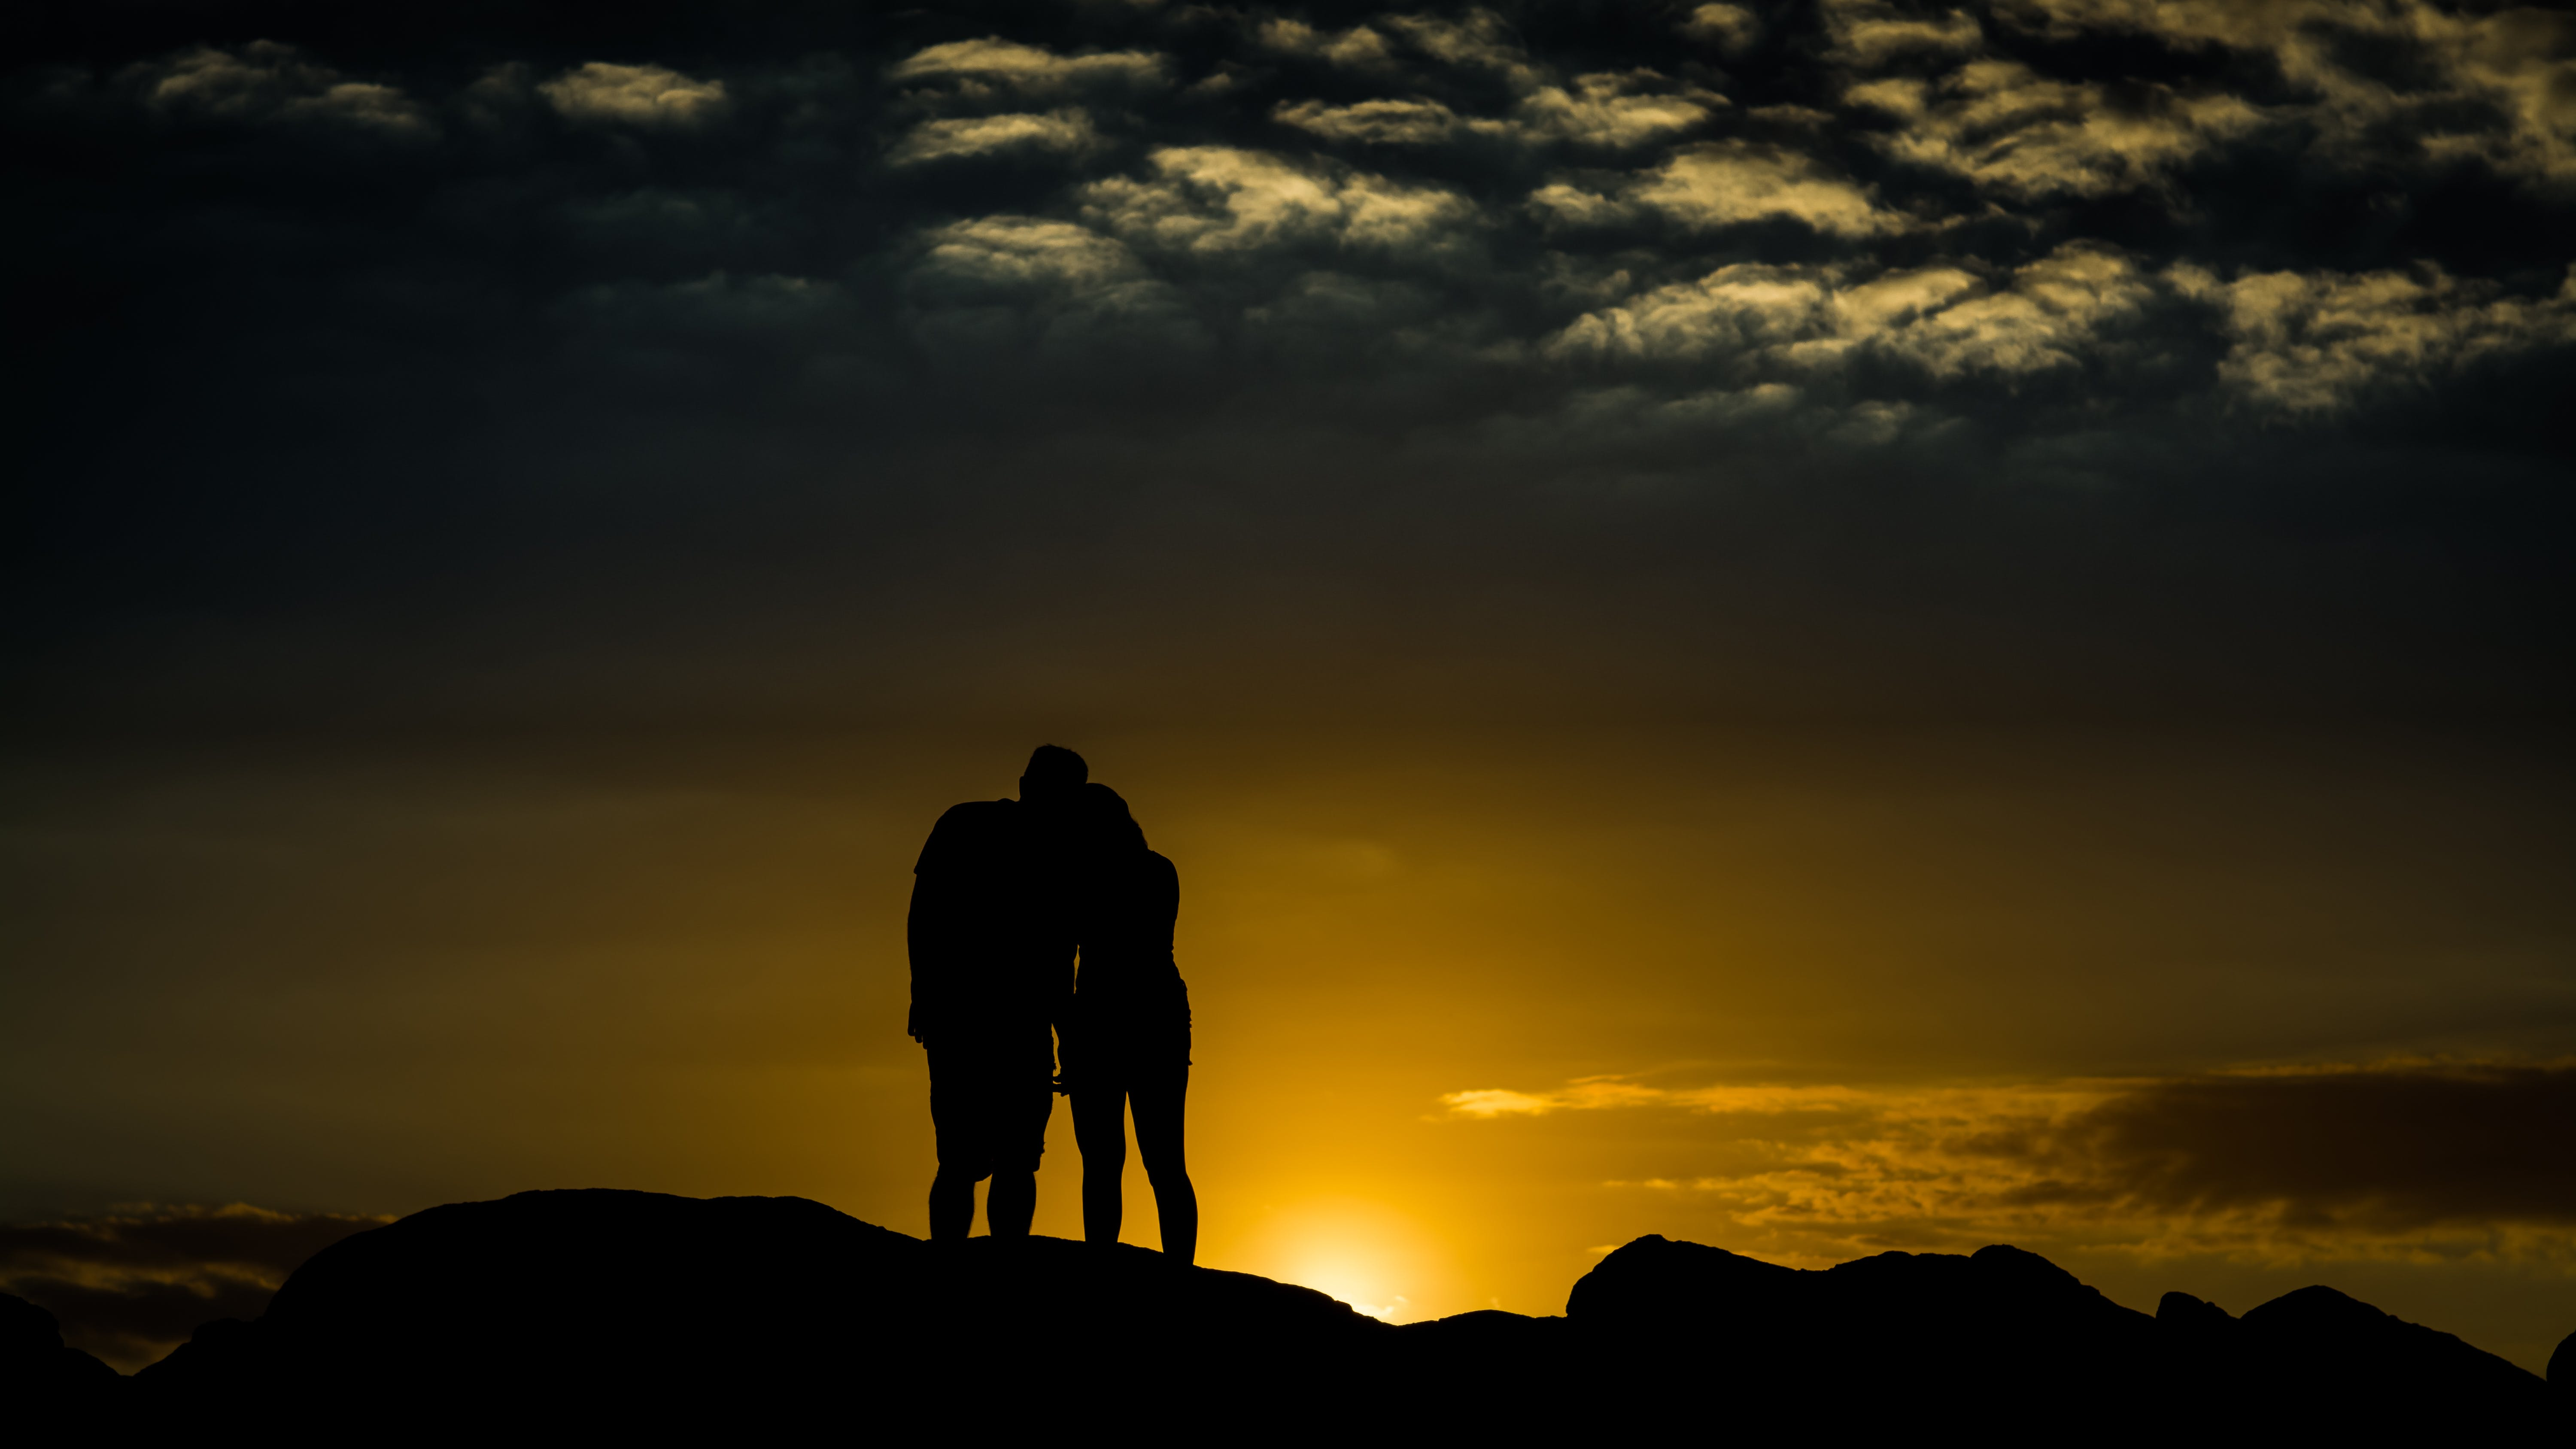 Silhouette Photo of Man and Woman